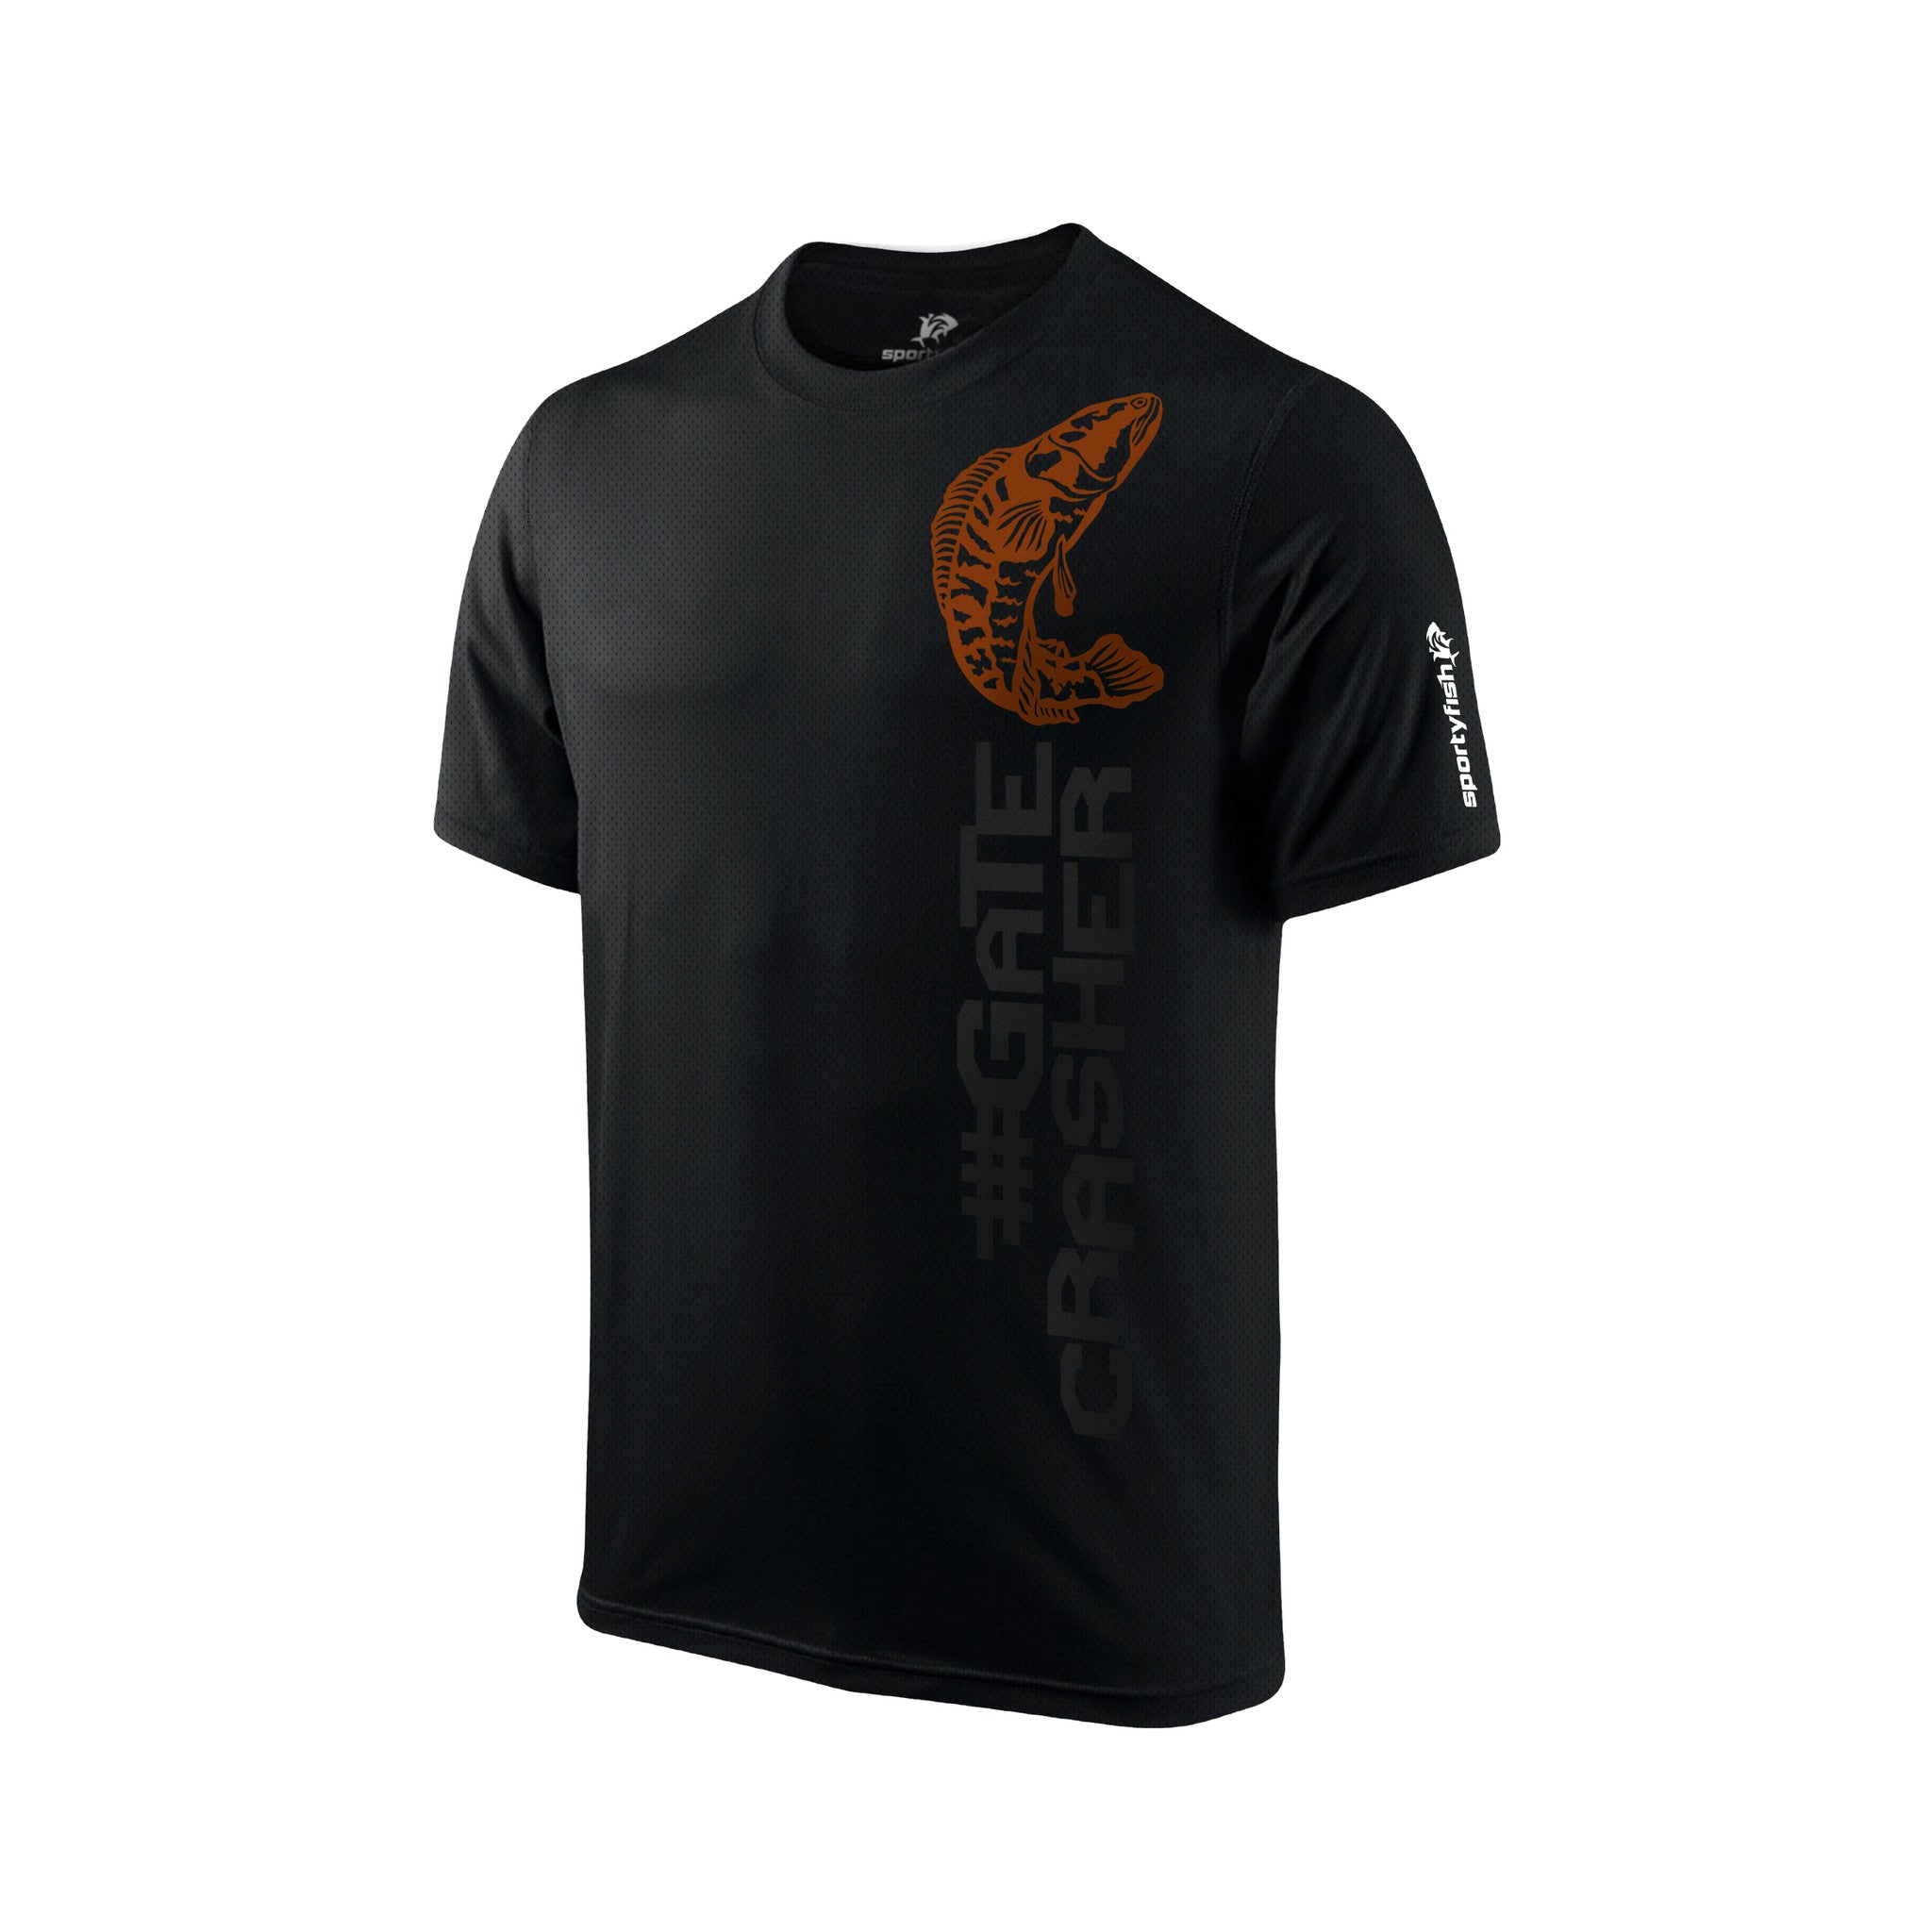 SportyFish Black Series T-shirt(front view): Toman